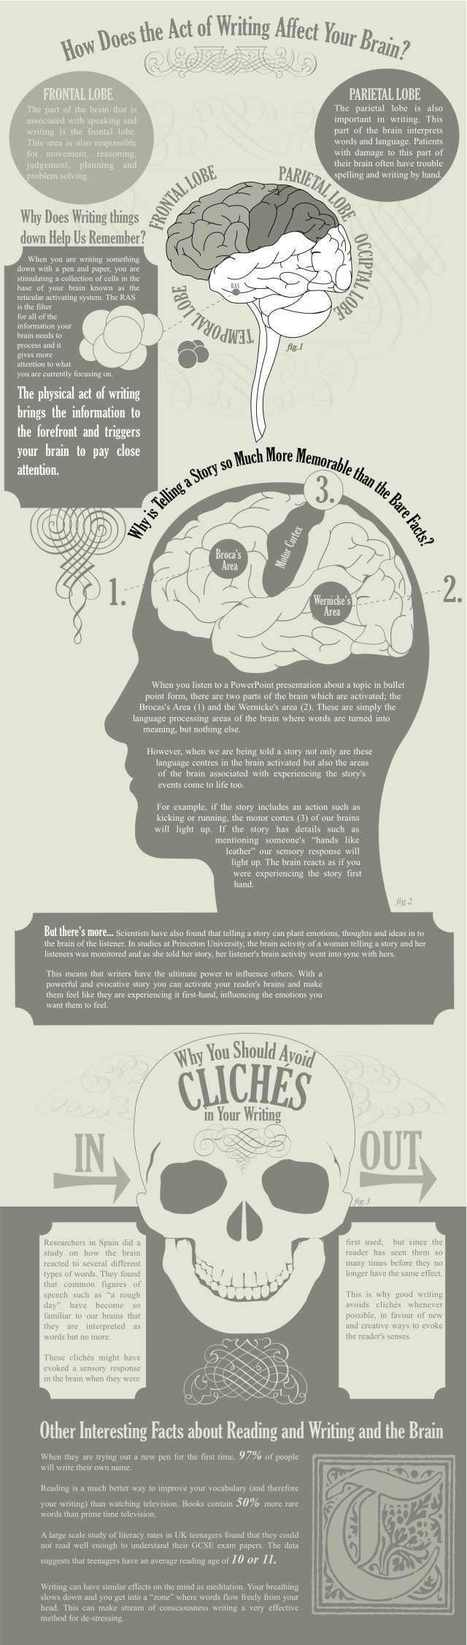 How Does Writing Affect Your Brain? [infographic] | Edumathingy | Scoop.it